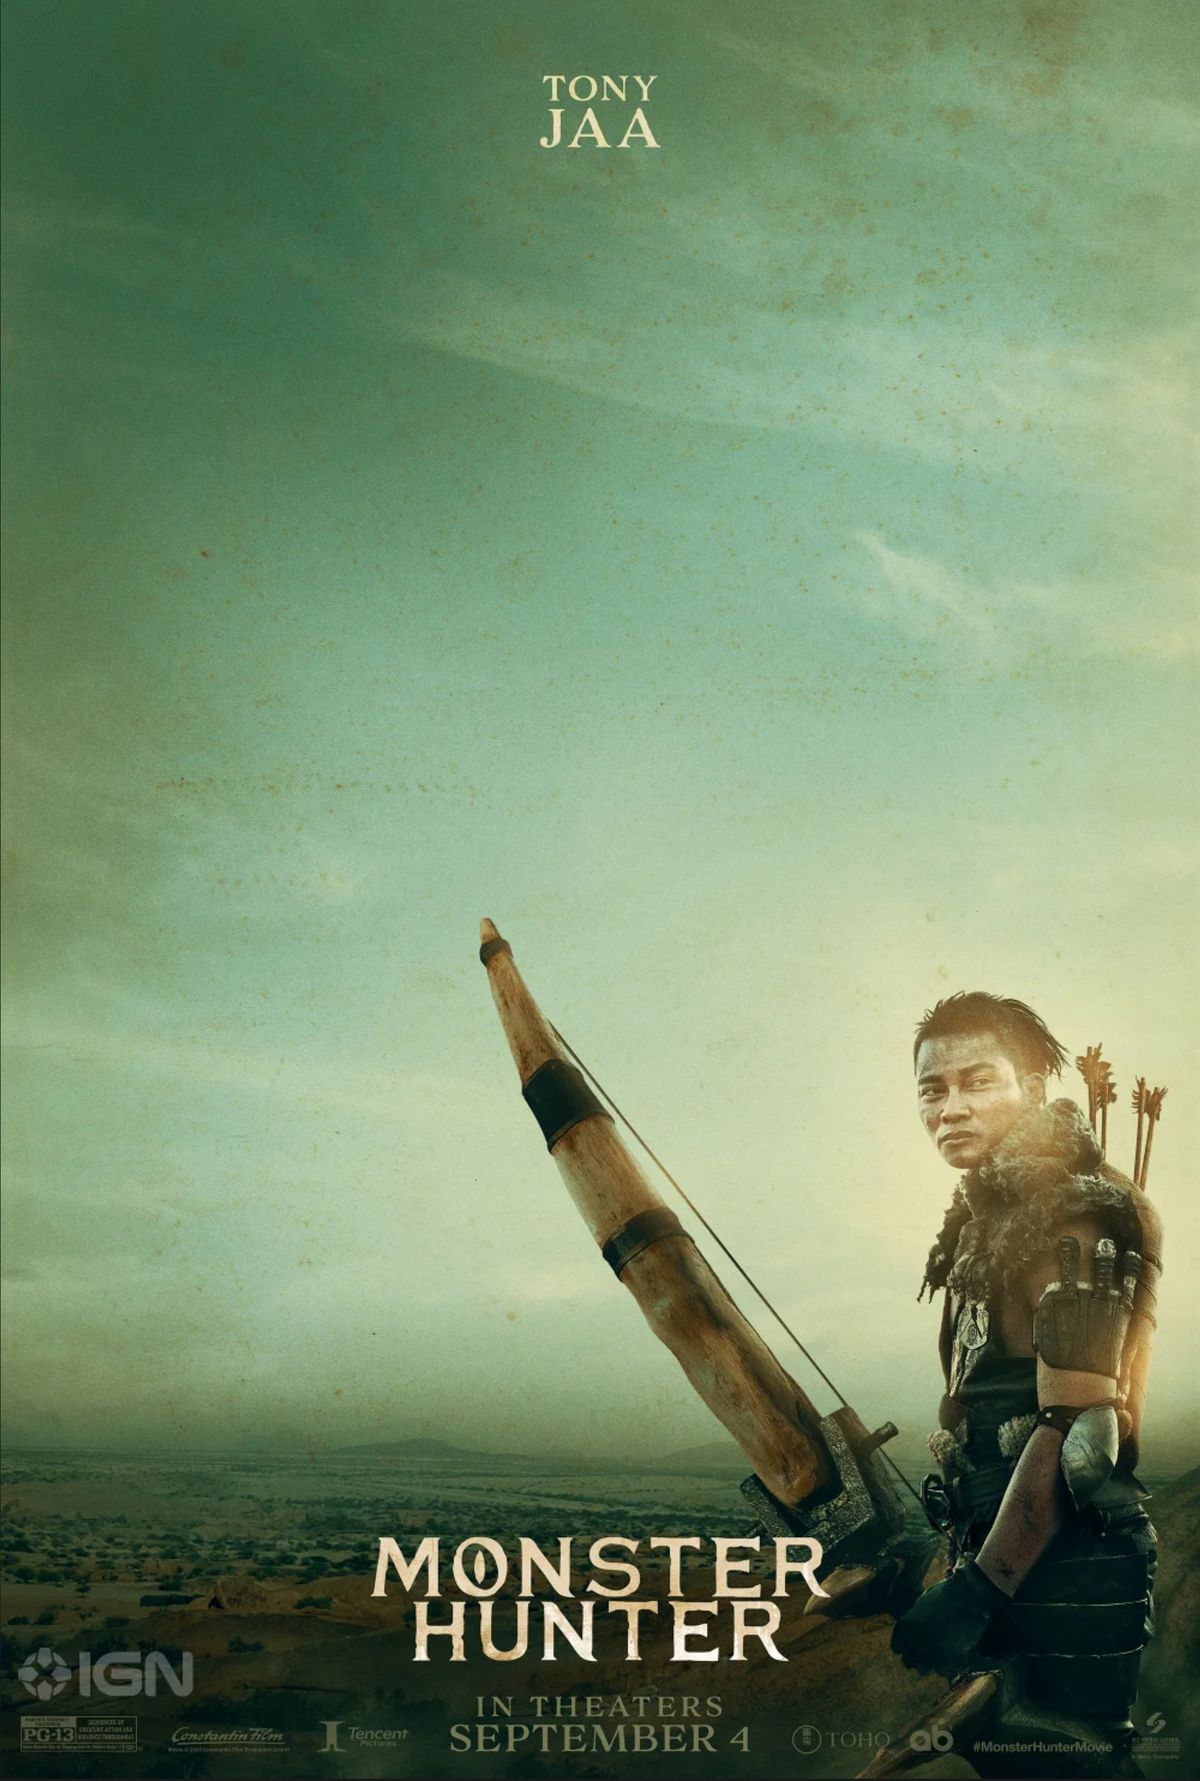 Tony Jaa holding an oversized bow. The sky is similarly green, but the poster itself also seems distressed. Perhaps there's a dust storm, or the poster was damaged.